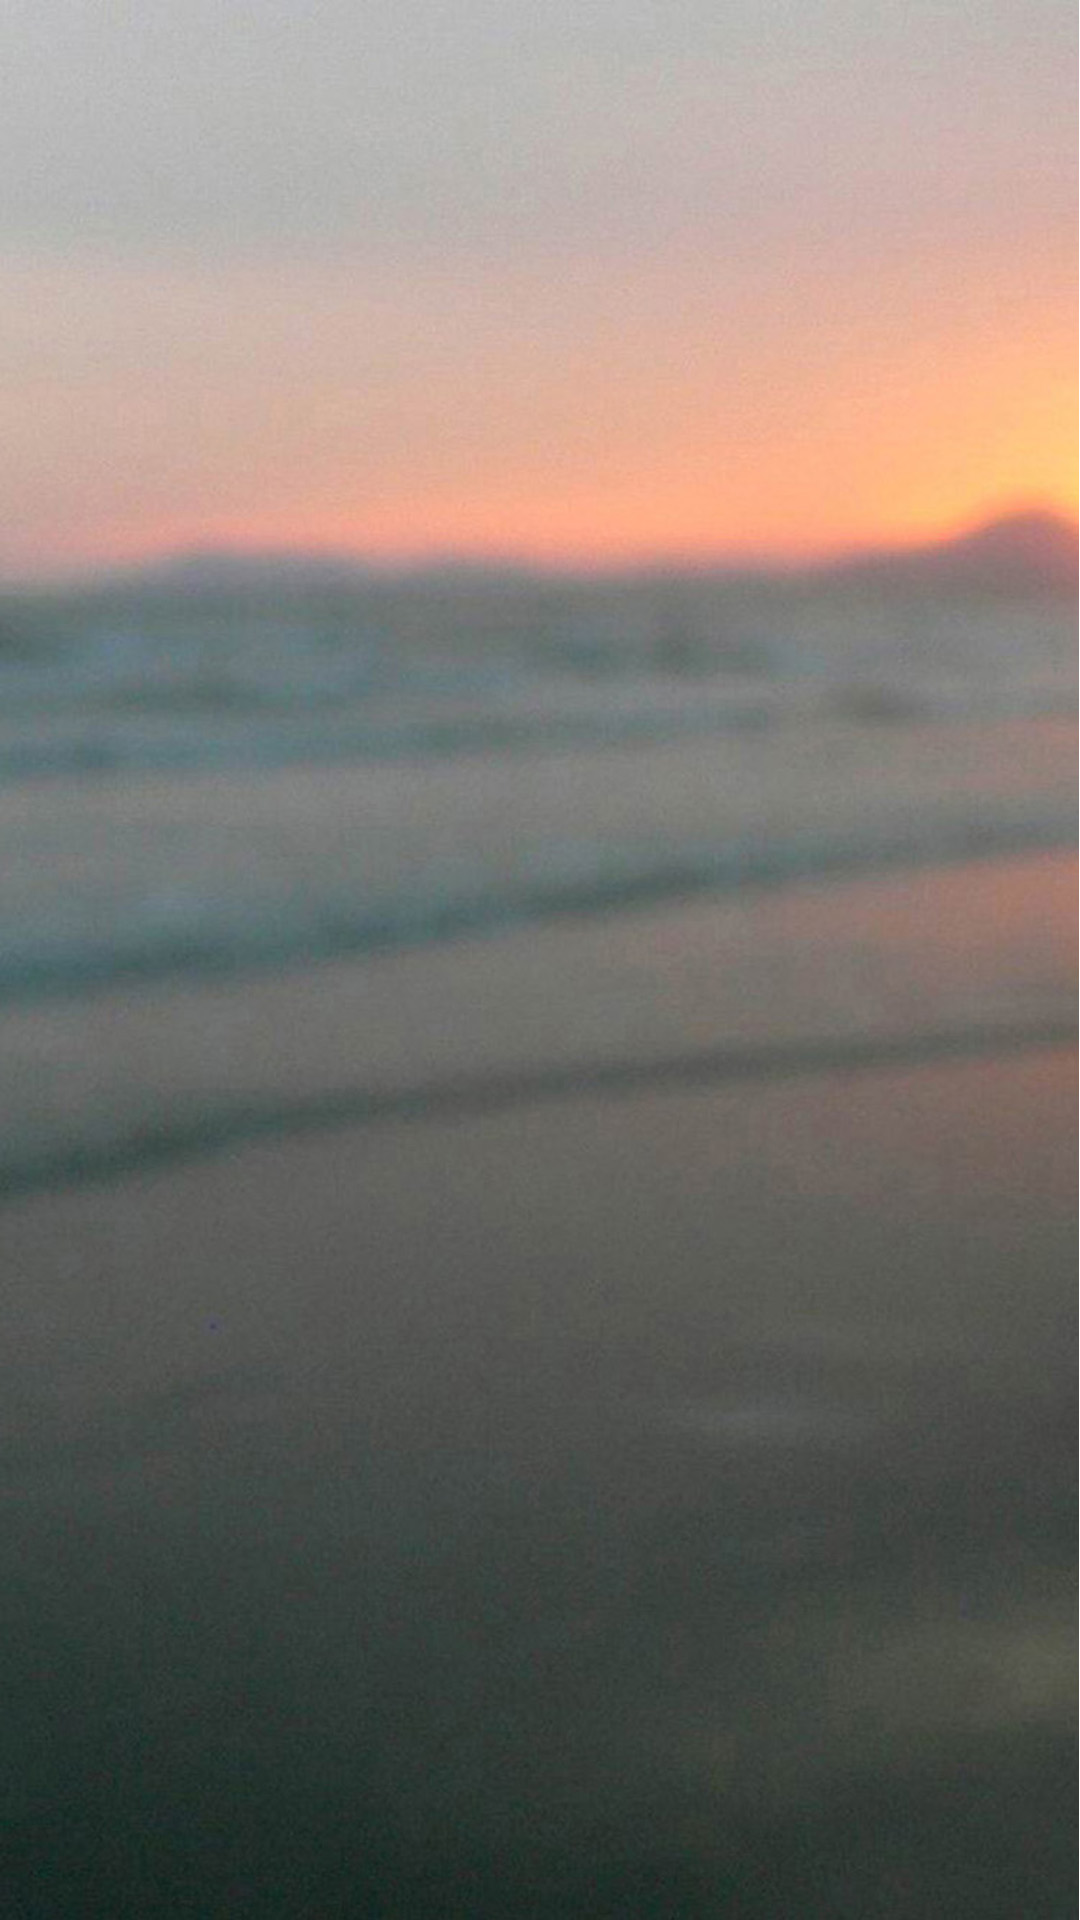 beach iphone 6 plus wallpaper 192